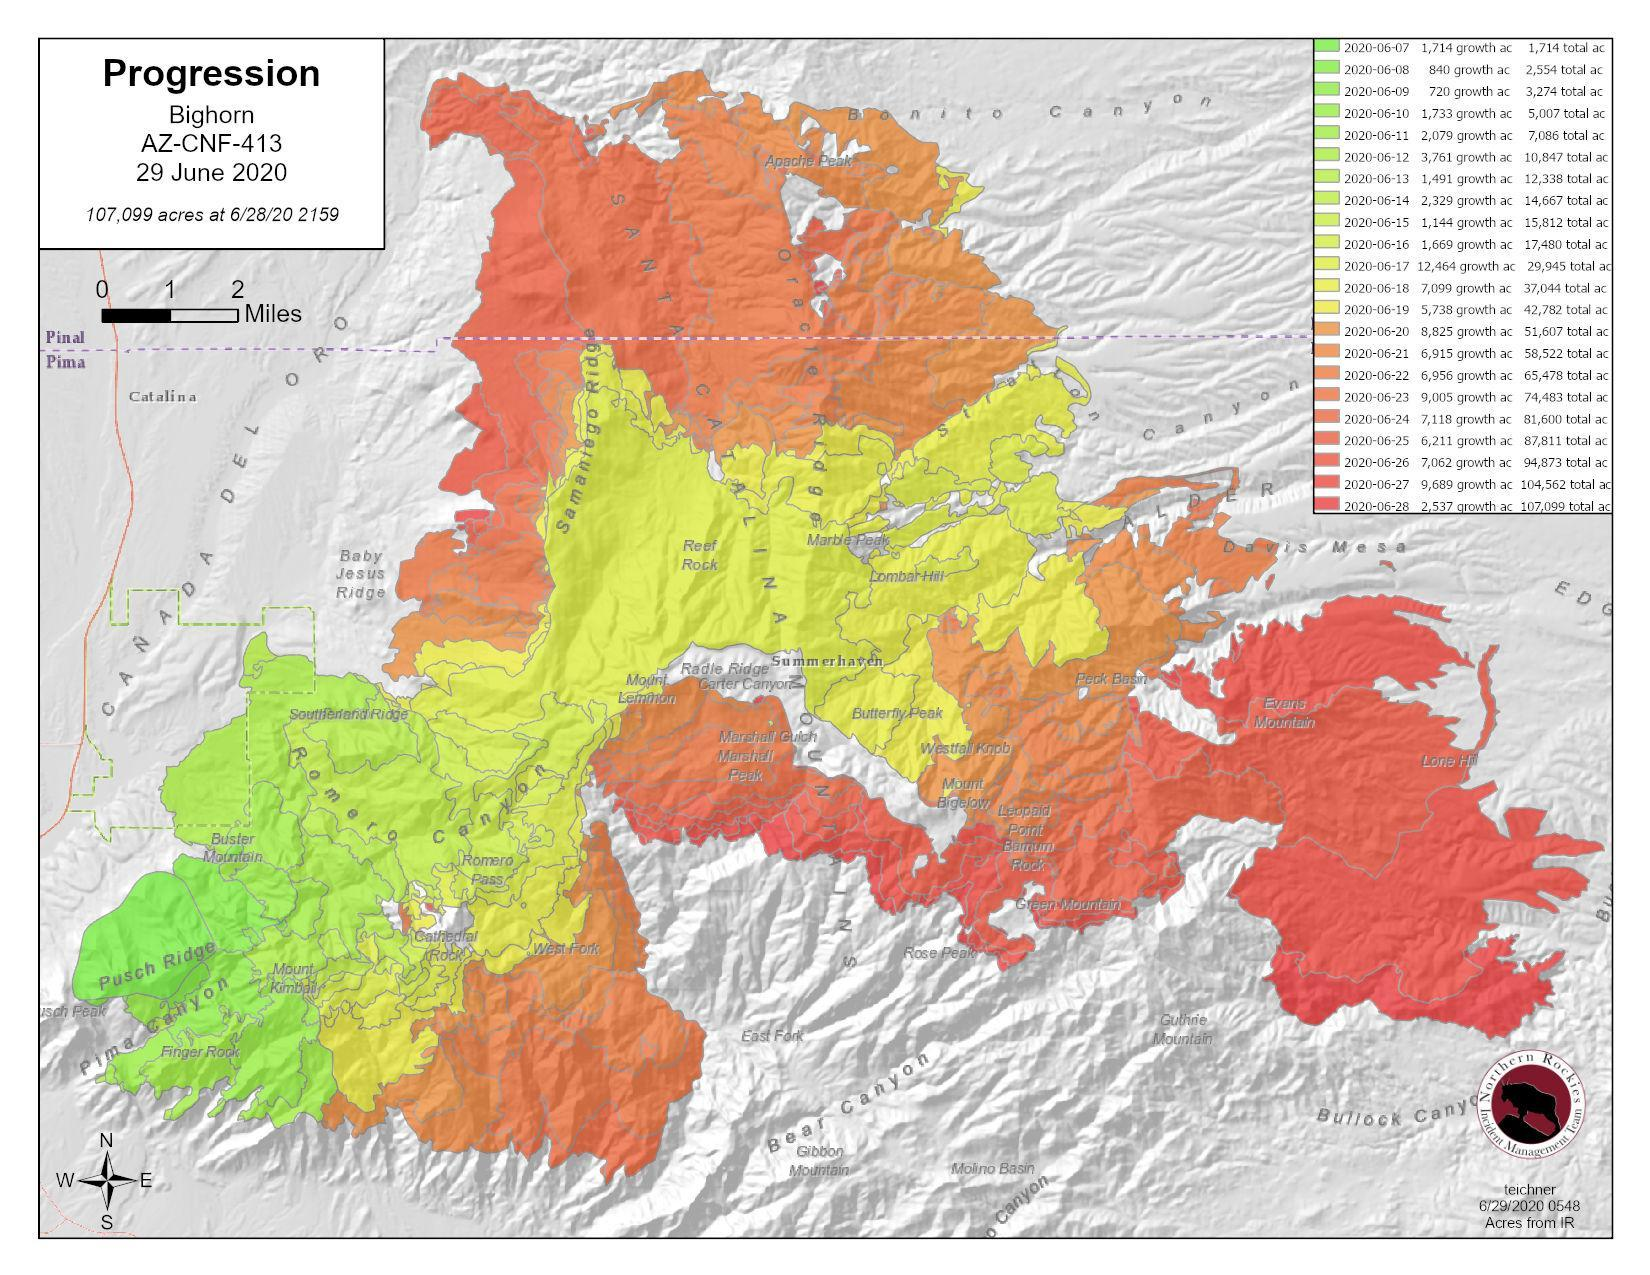 fire progression map in various colors June 29